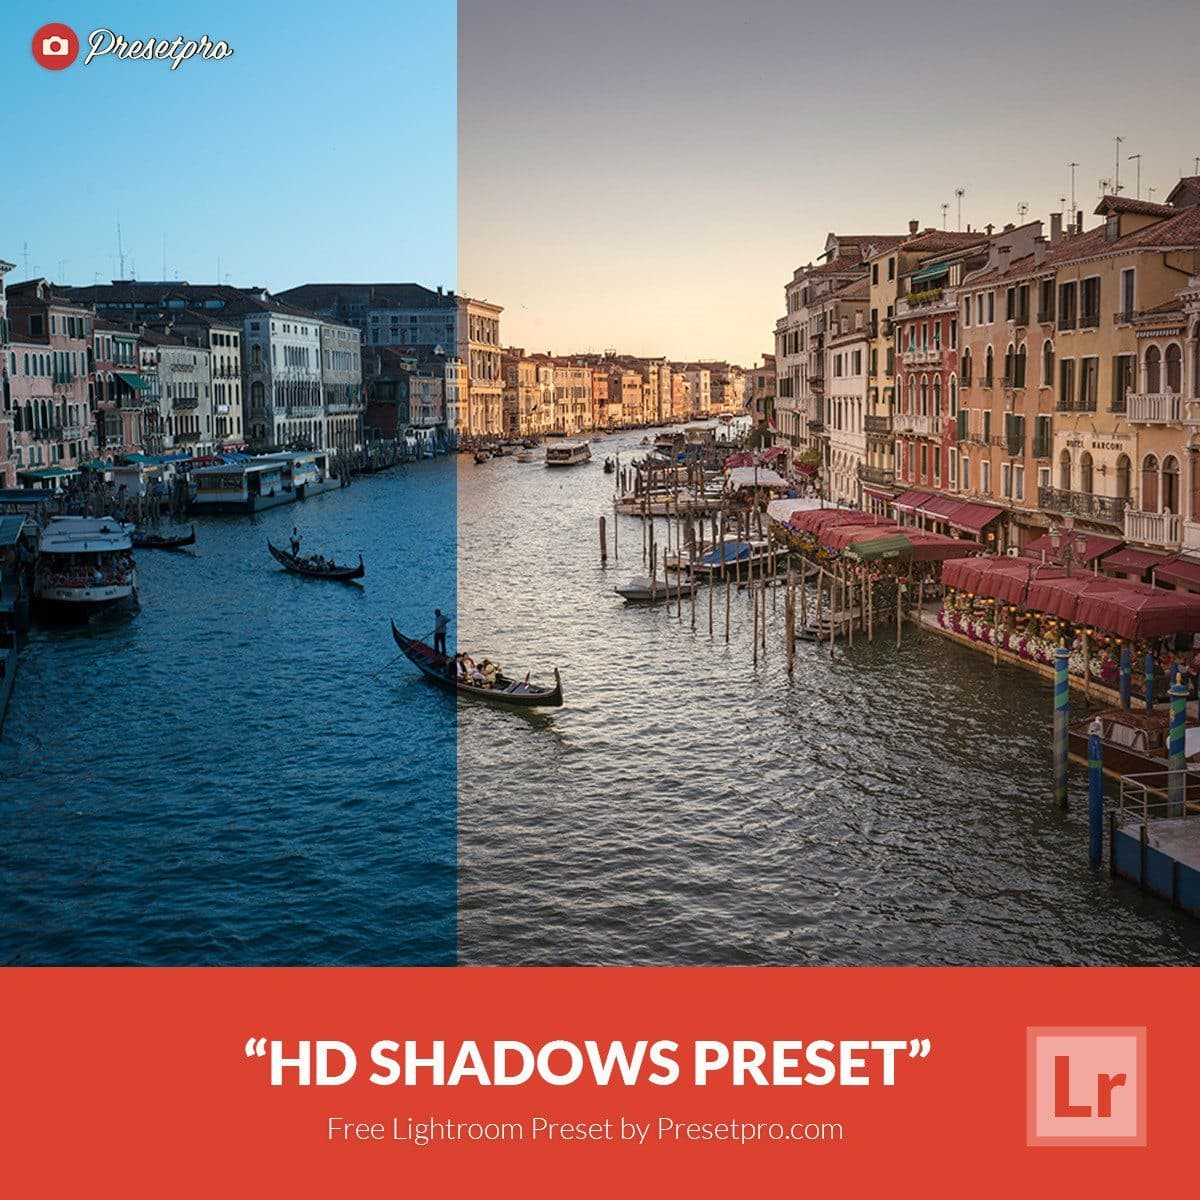 Free-Lightroom-Preset-HD-Shadows-Presetpro